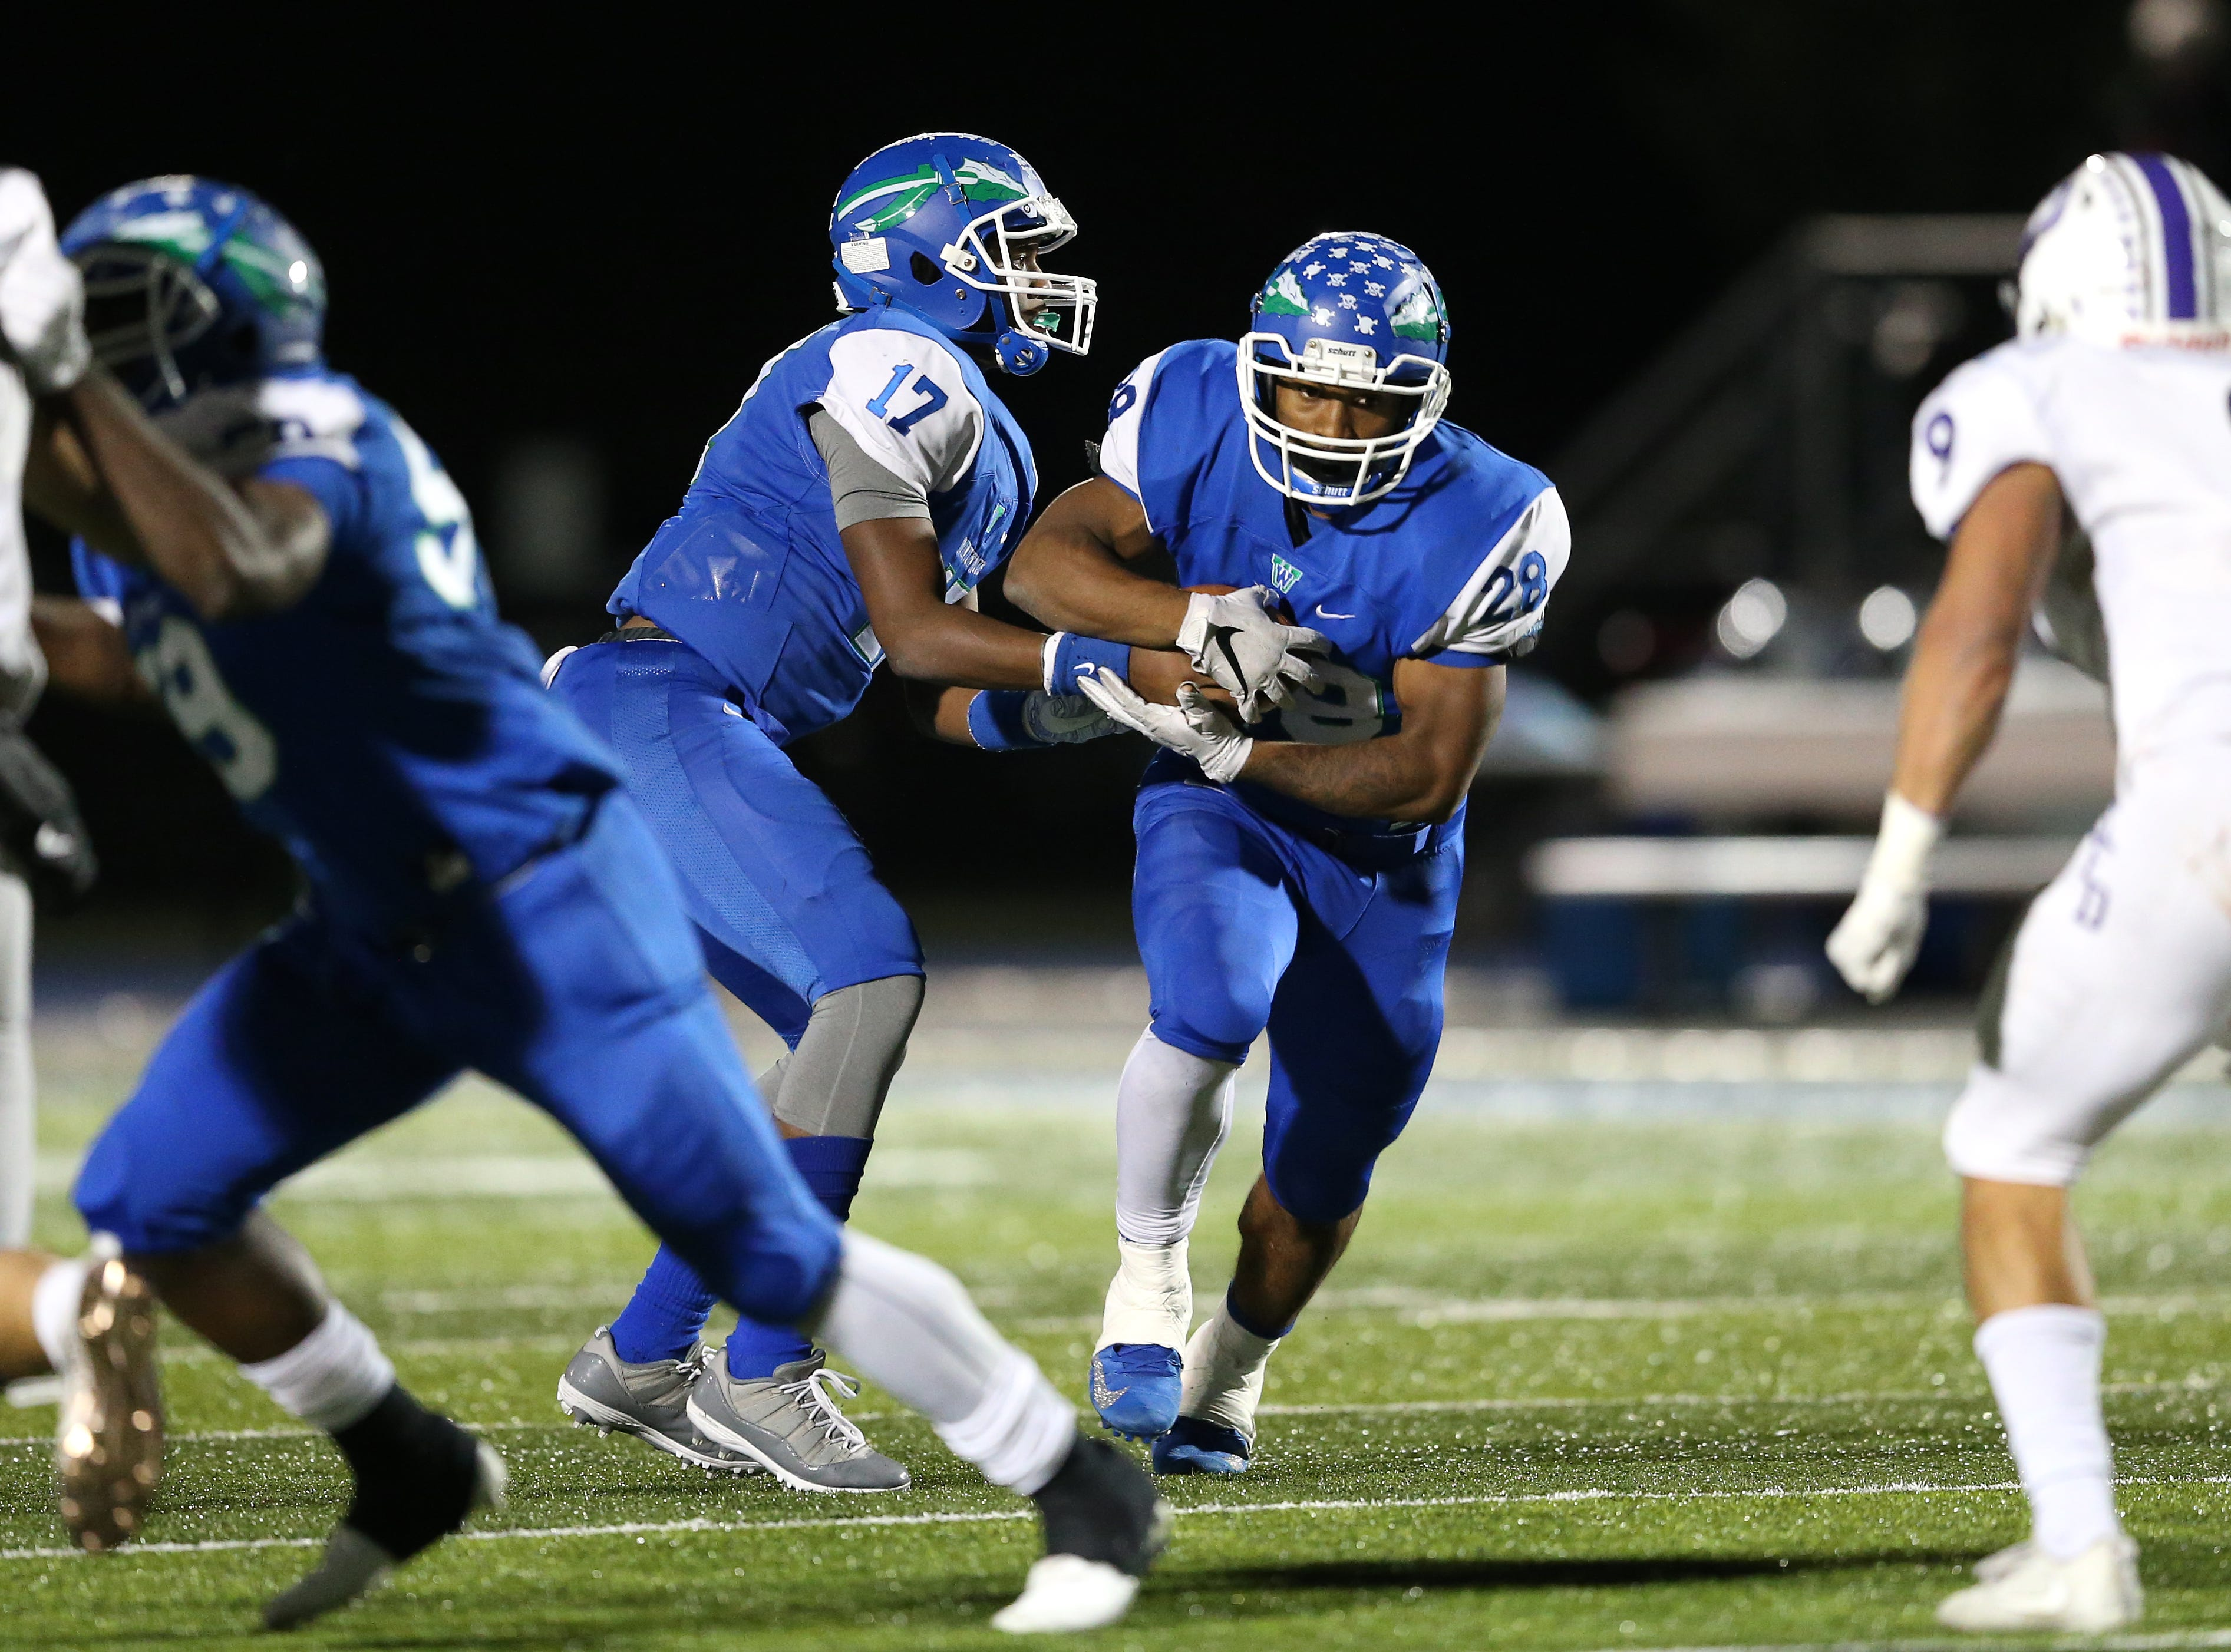 Winton Woods Warriors quarterback MiChale Wingfield (17)  hands the ball off to running back Miyan Williams (28) in the second quarter during a high school football game between St. Francis de Sales and Winton Woods, Friday, Oct. 19, 2018, at Winton Woods High School in Forest Park, Ohio.